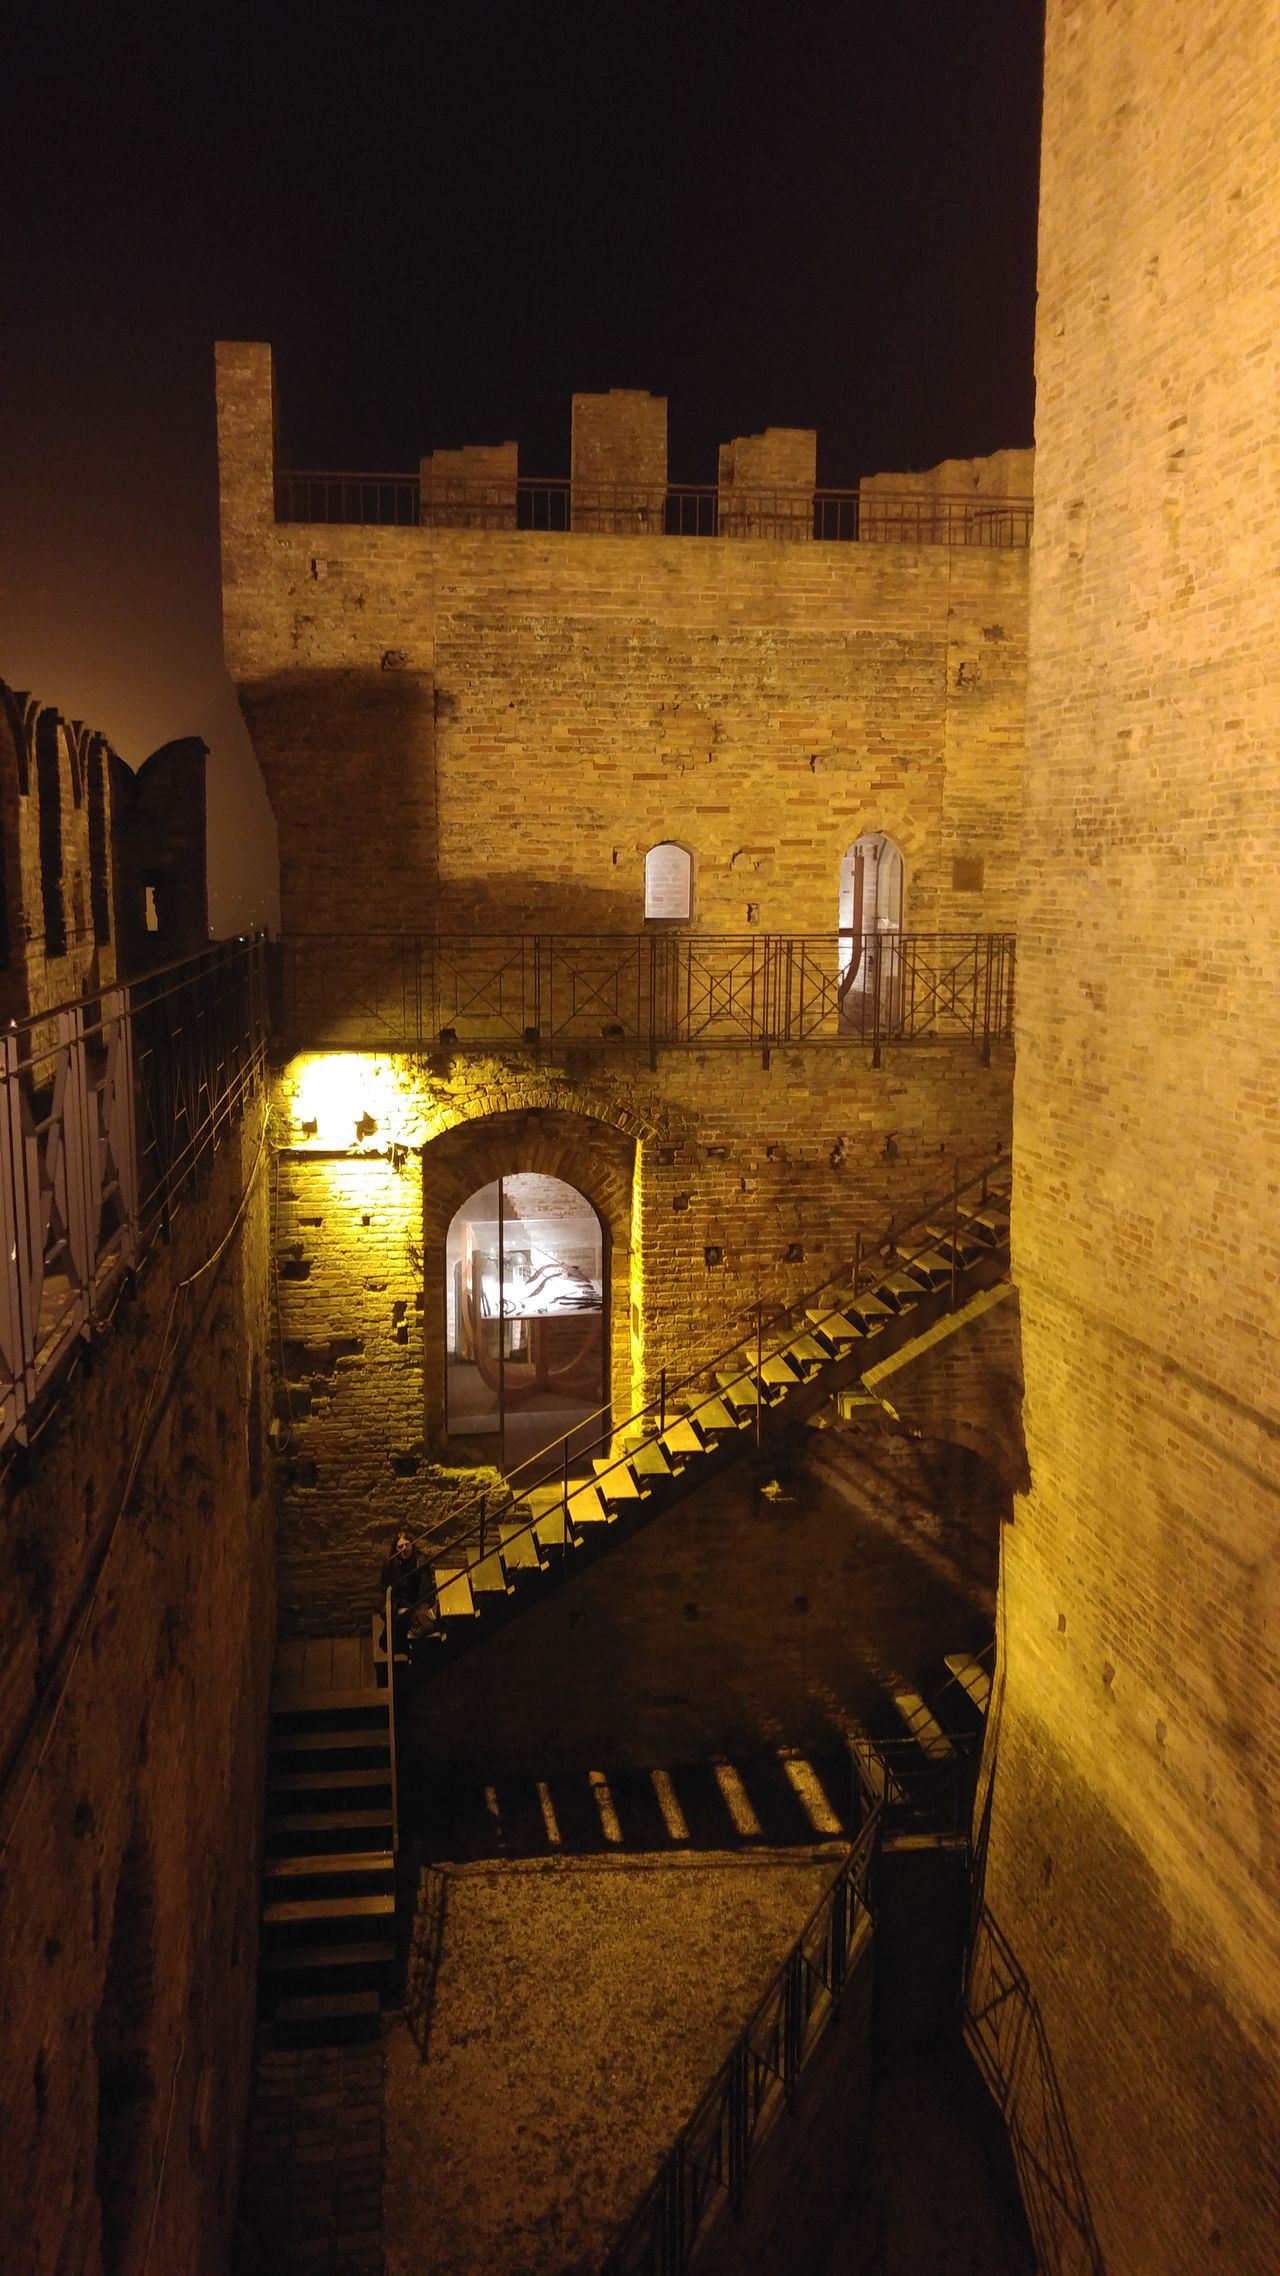 Illuminated Night No People Architecture Outdoors Medieval MedievalTown Medievalcastle Stairs Mistery Ghost